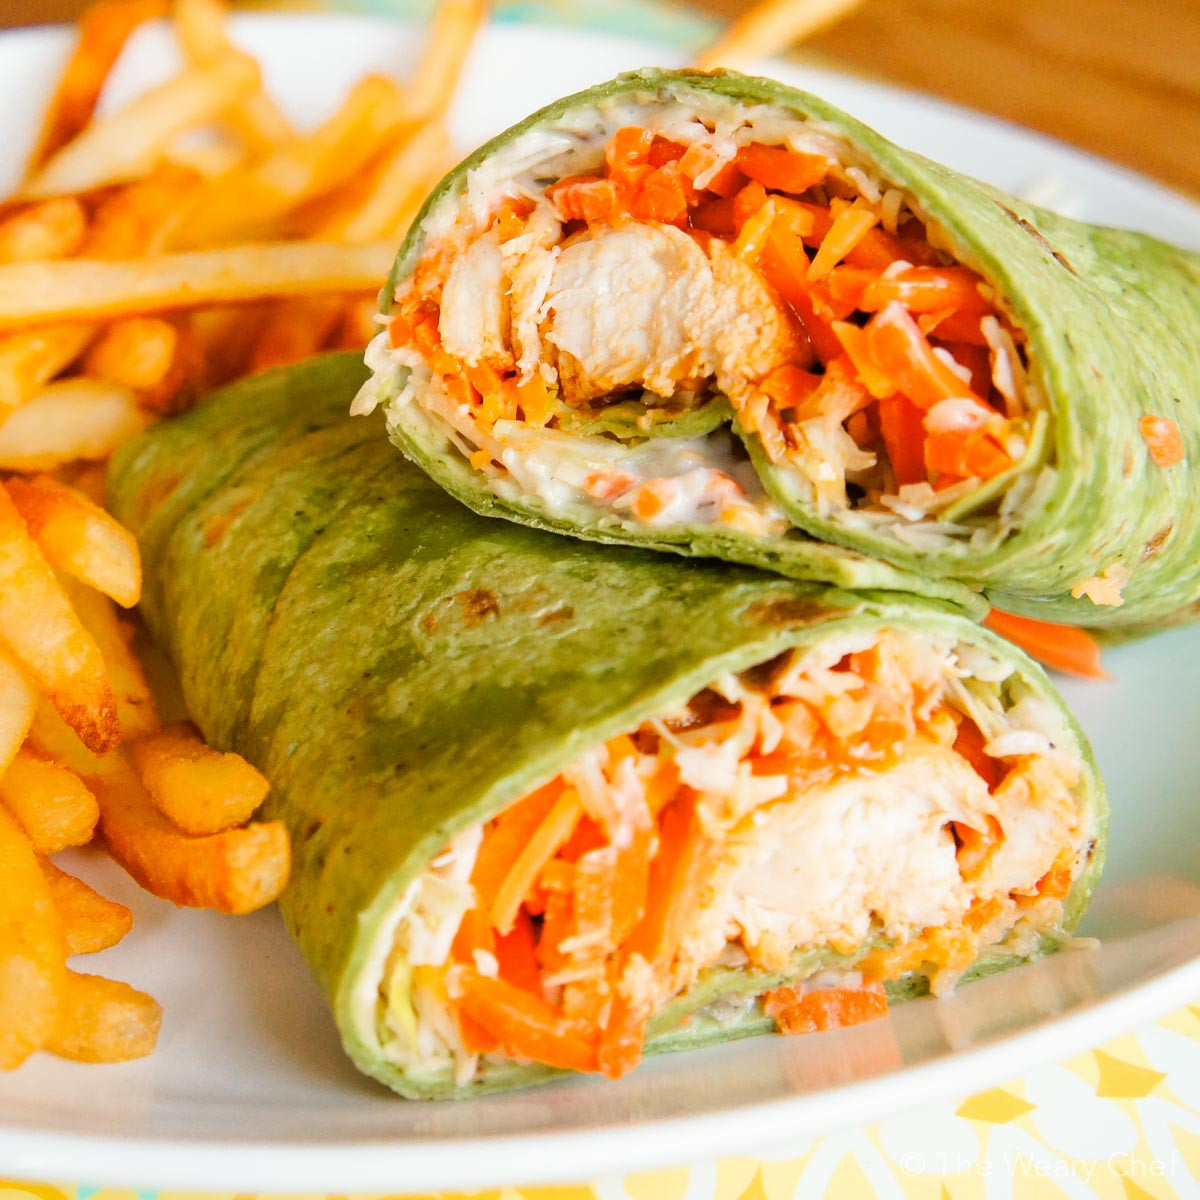 Easy Dinner Recipe  Buffalo Chicken Wraps A fun and tasty dinner idea The